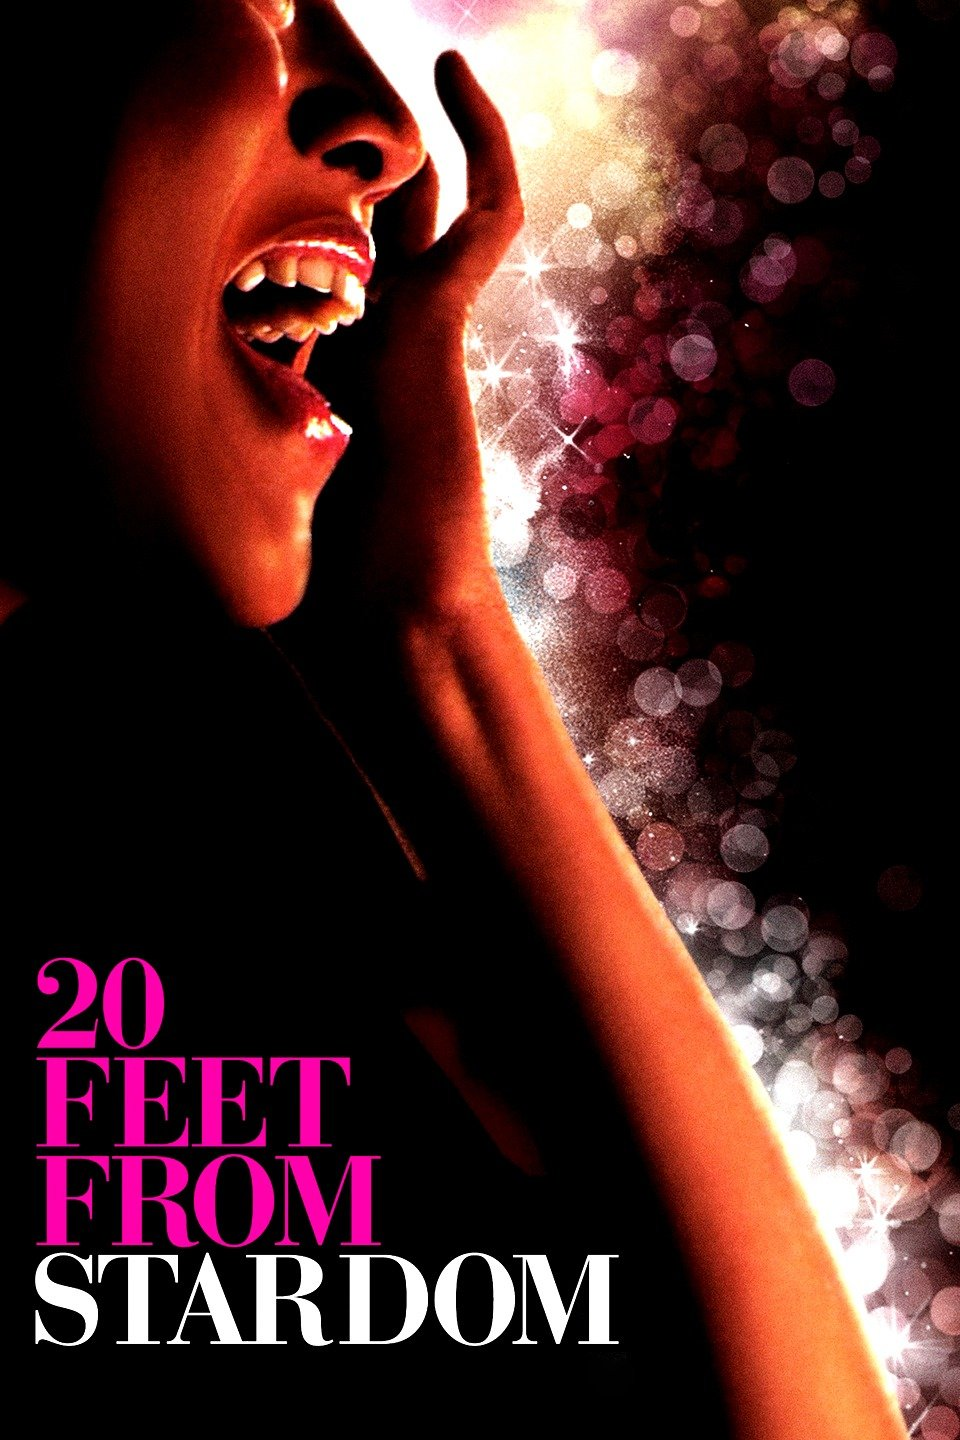 Image result for 20 feet from stardom